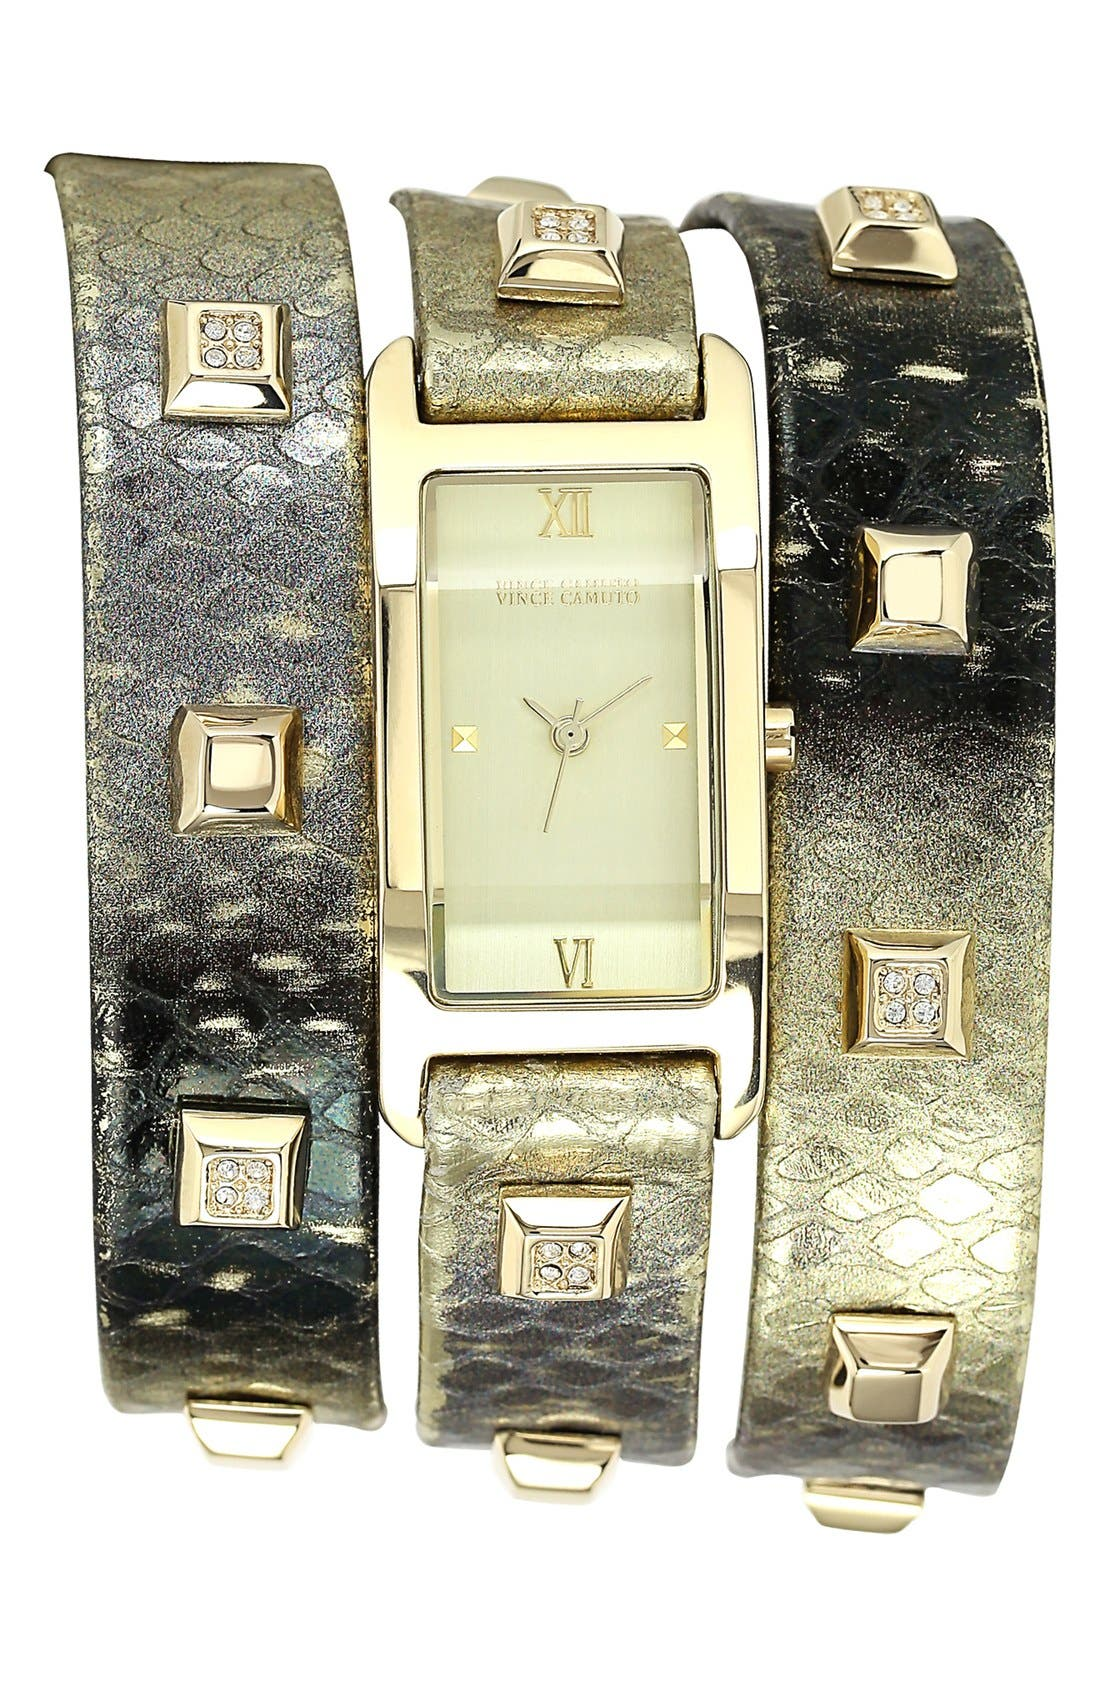 Alternate Image 1 Selected - Vince Camuto Triple Wrap Leather Strap Watch, 19mm x 40mm